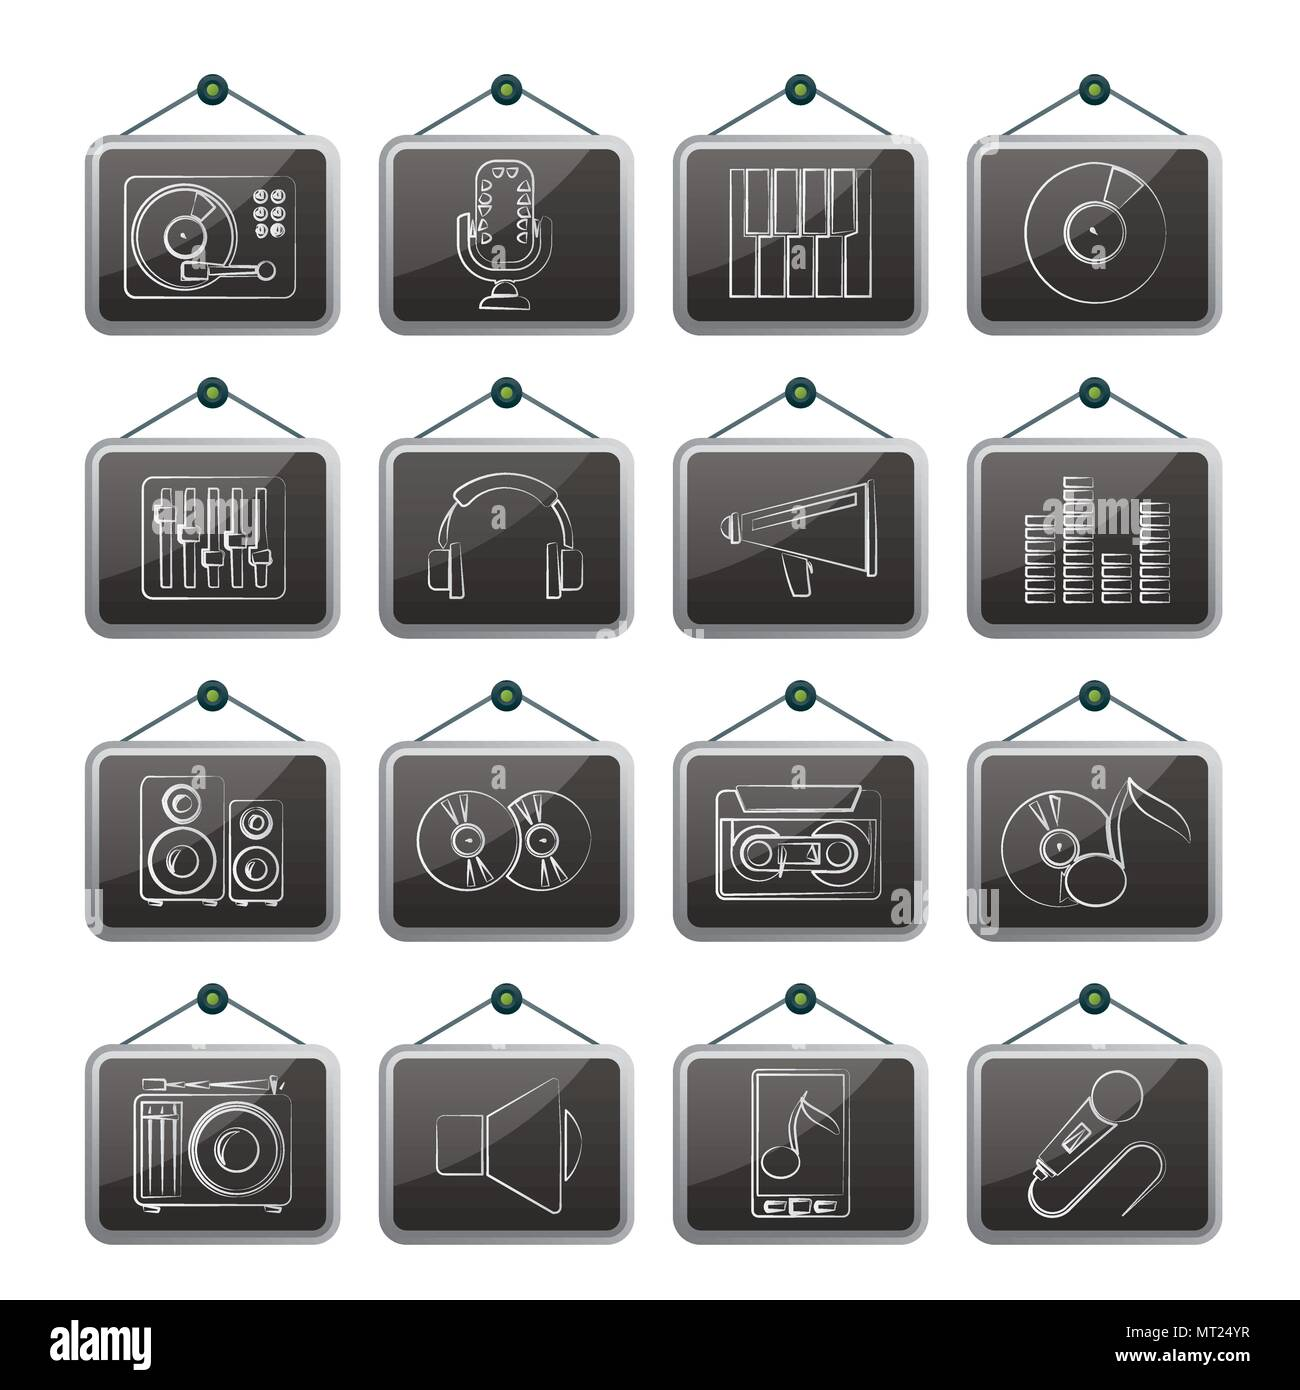 Music and audio equipment icons - vector icon setertainment - Stock Image